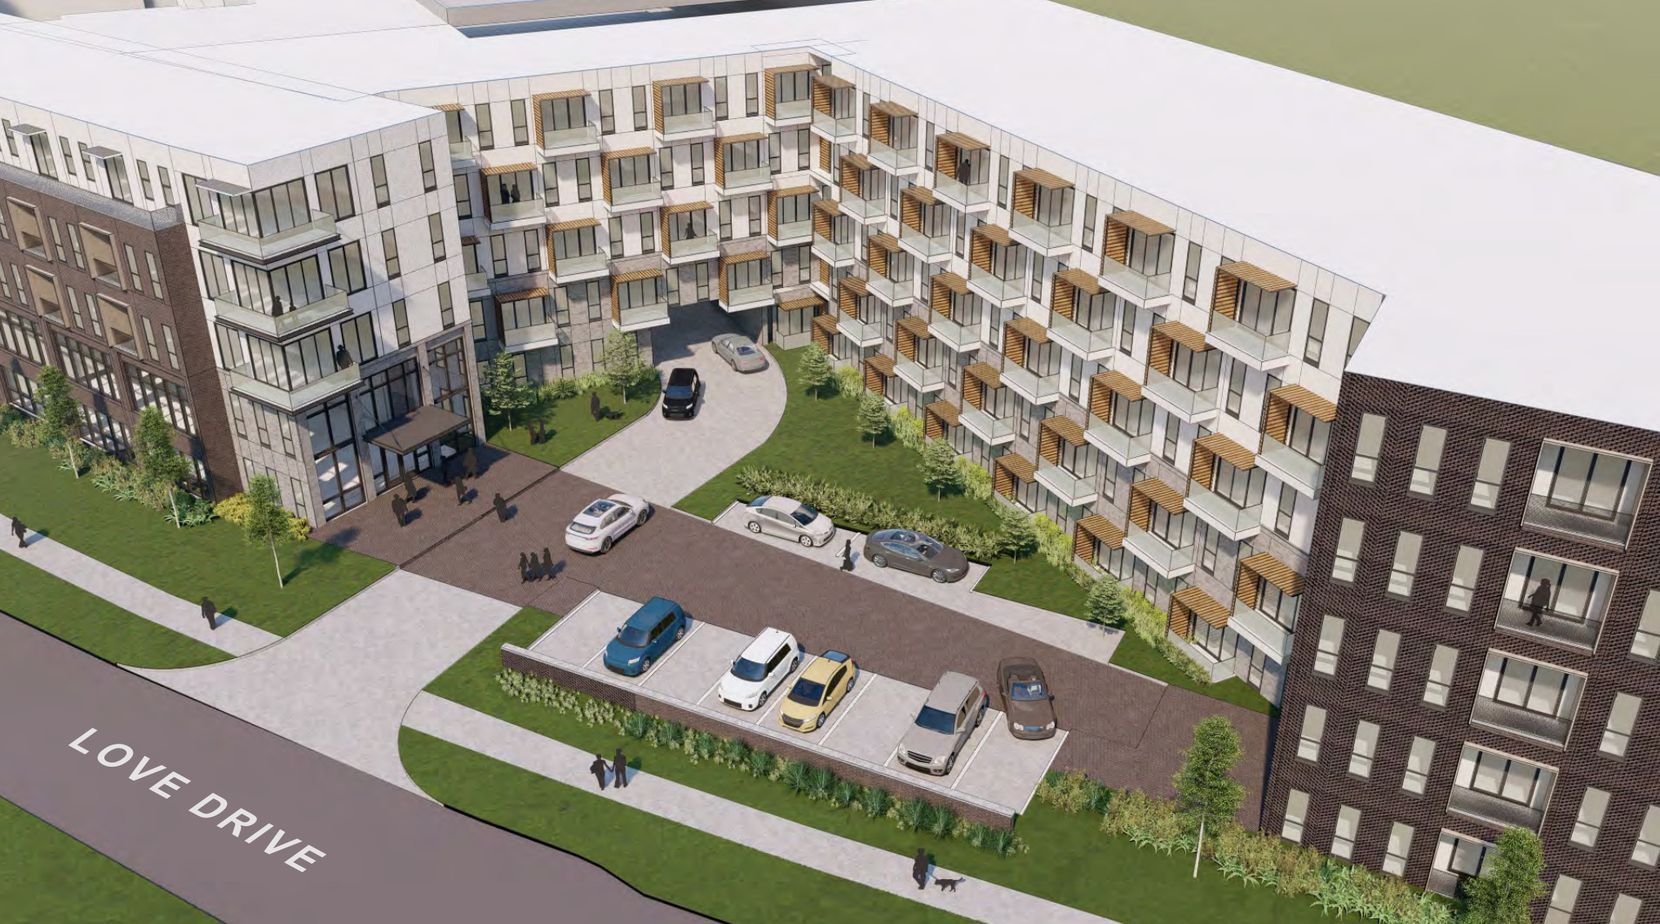 The planned apartment community would contain 385 units.